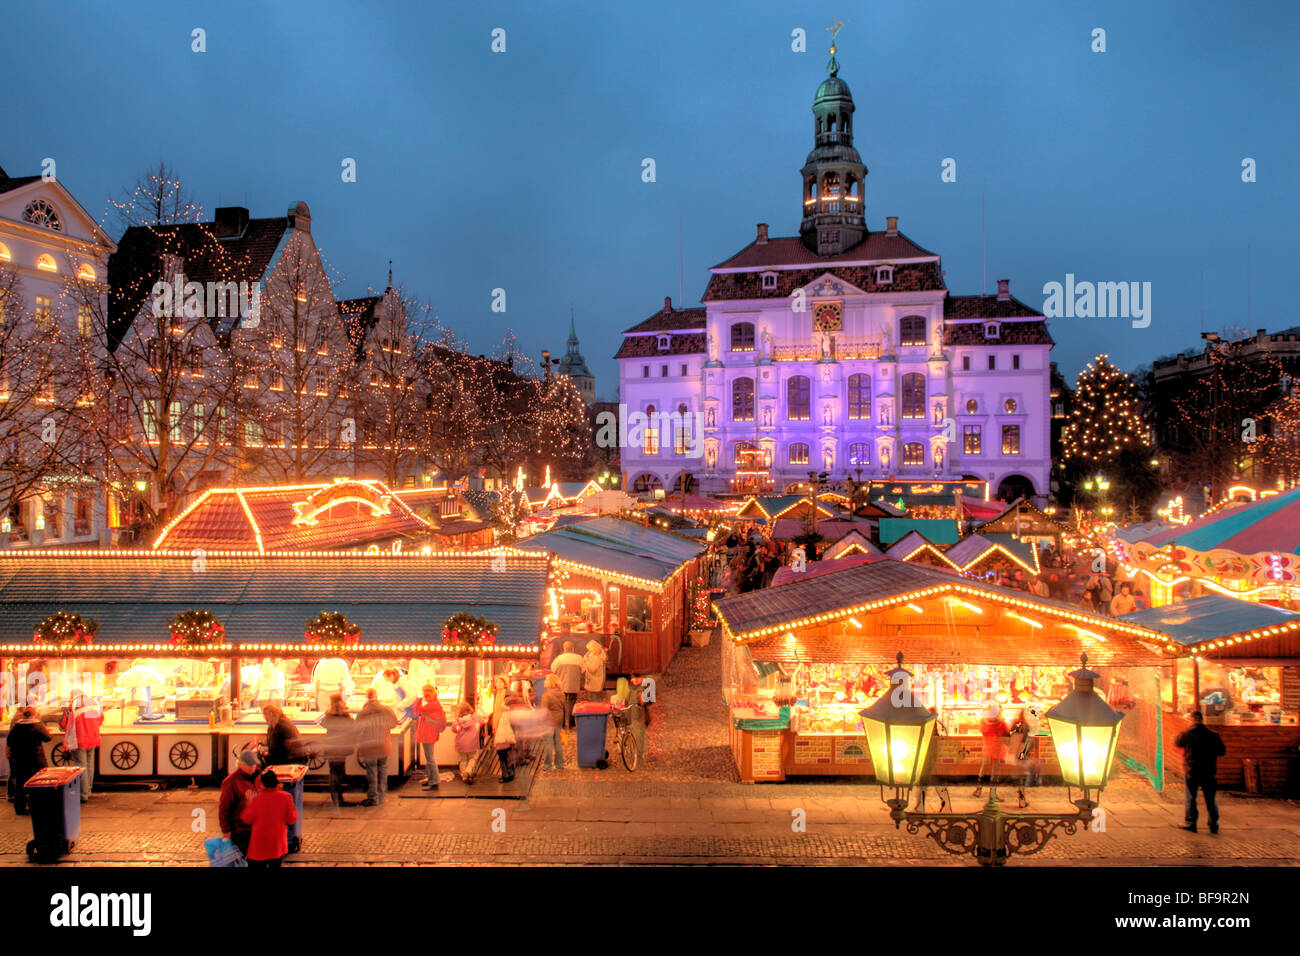 Christmas Market in front of the illuminated town hall of Lueneburg, Lower Saxony, Germany Stock Photo